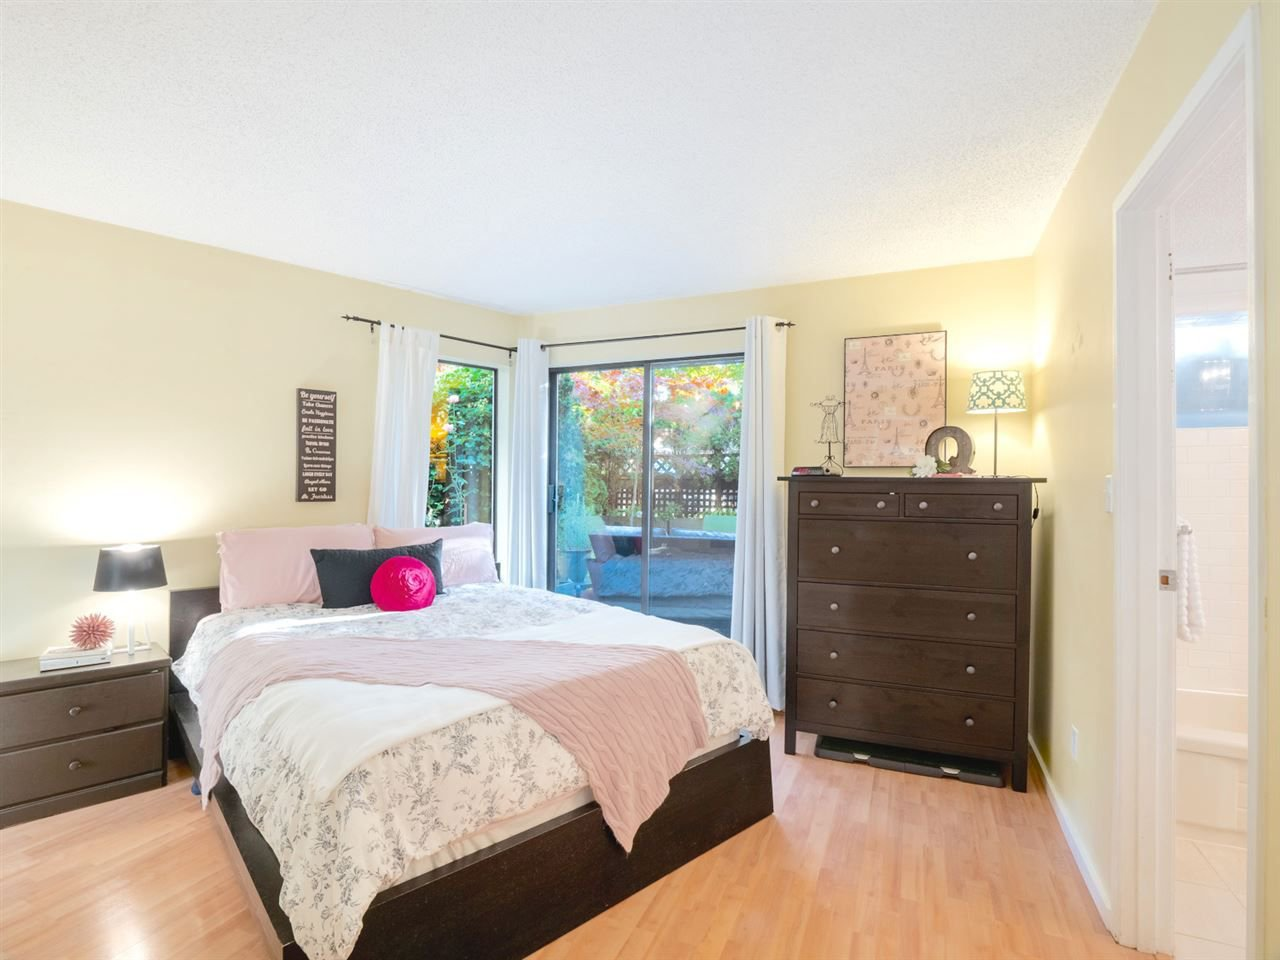 Photo 8: Photos: 101 8645 OSLER Street in Vancouver: Marpole Condo for sale (Vancouver West)  : MLS®# R2311470